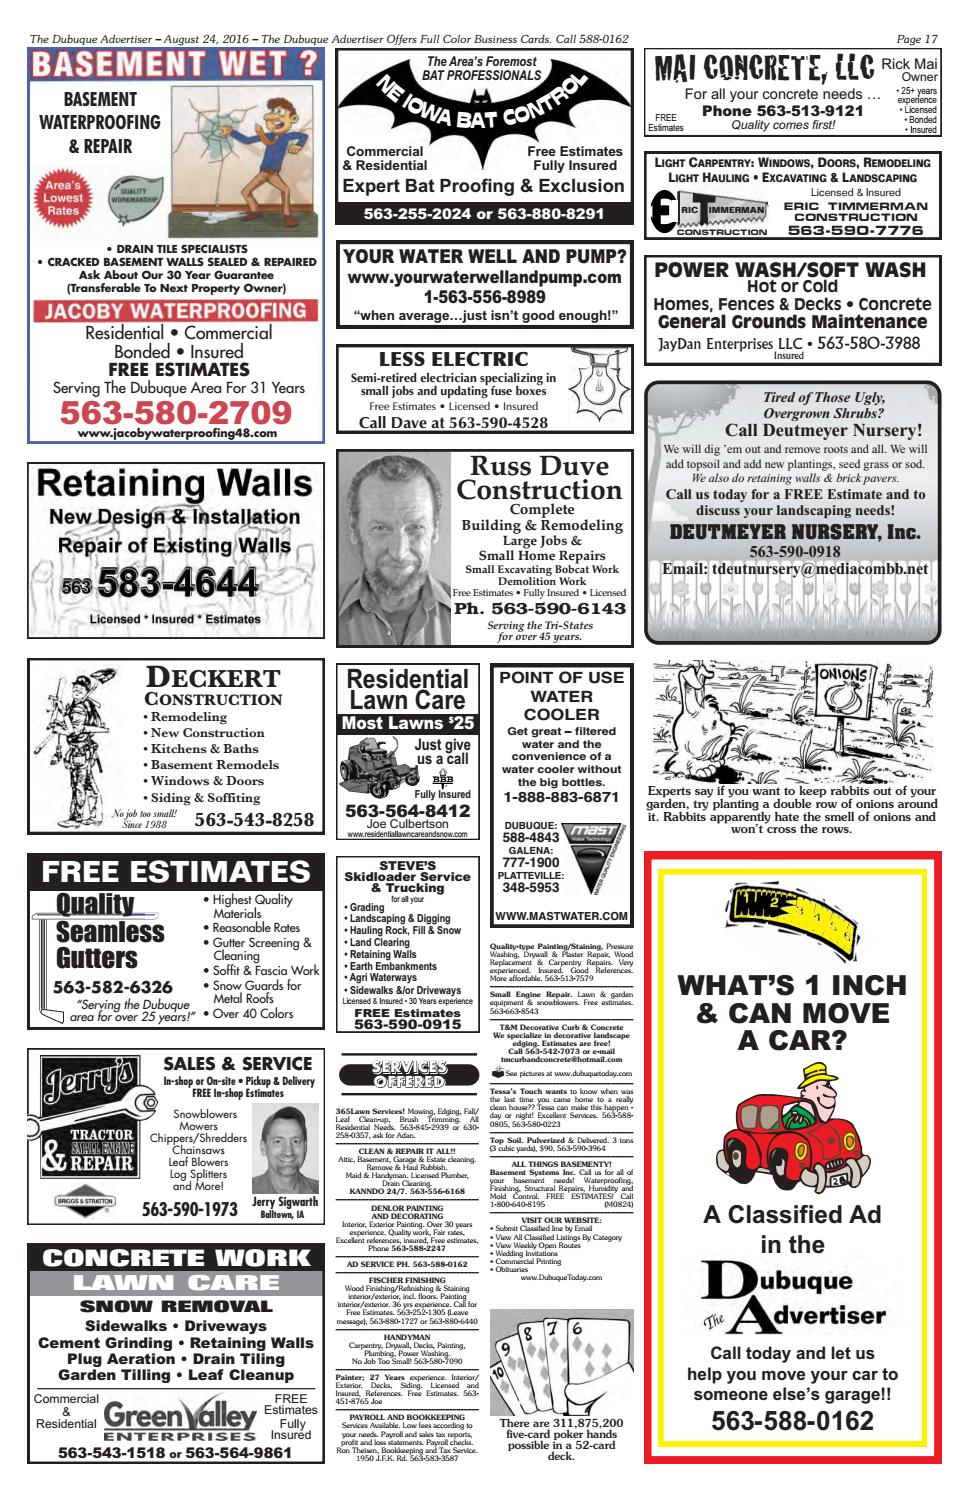 The Dubuque Advertiser August 24